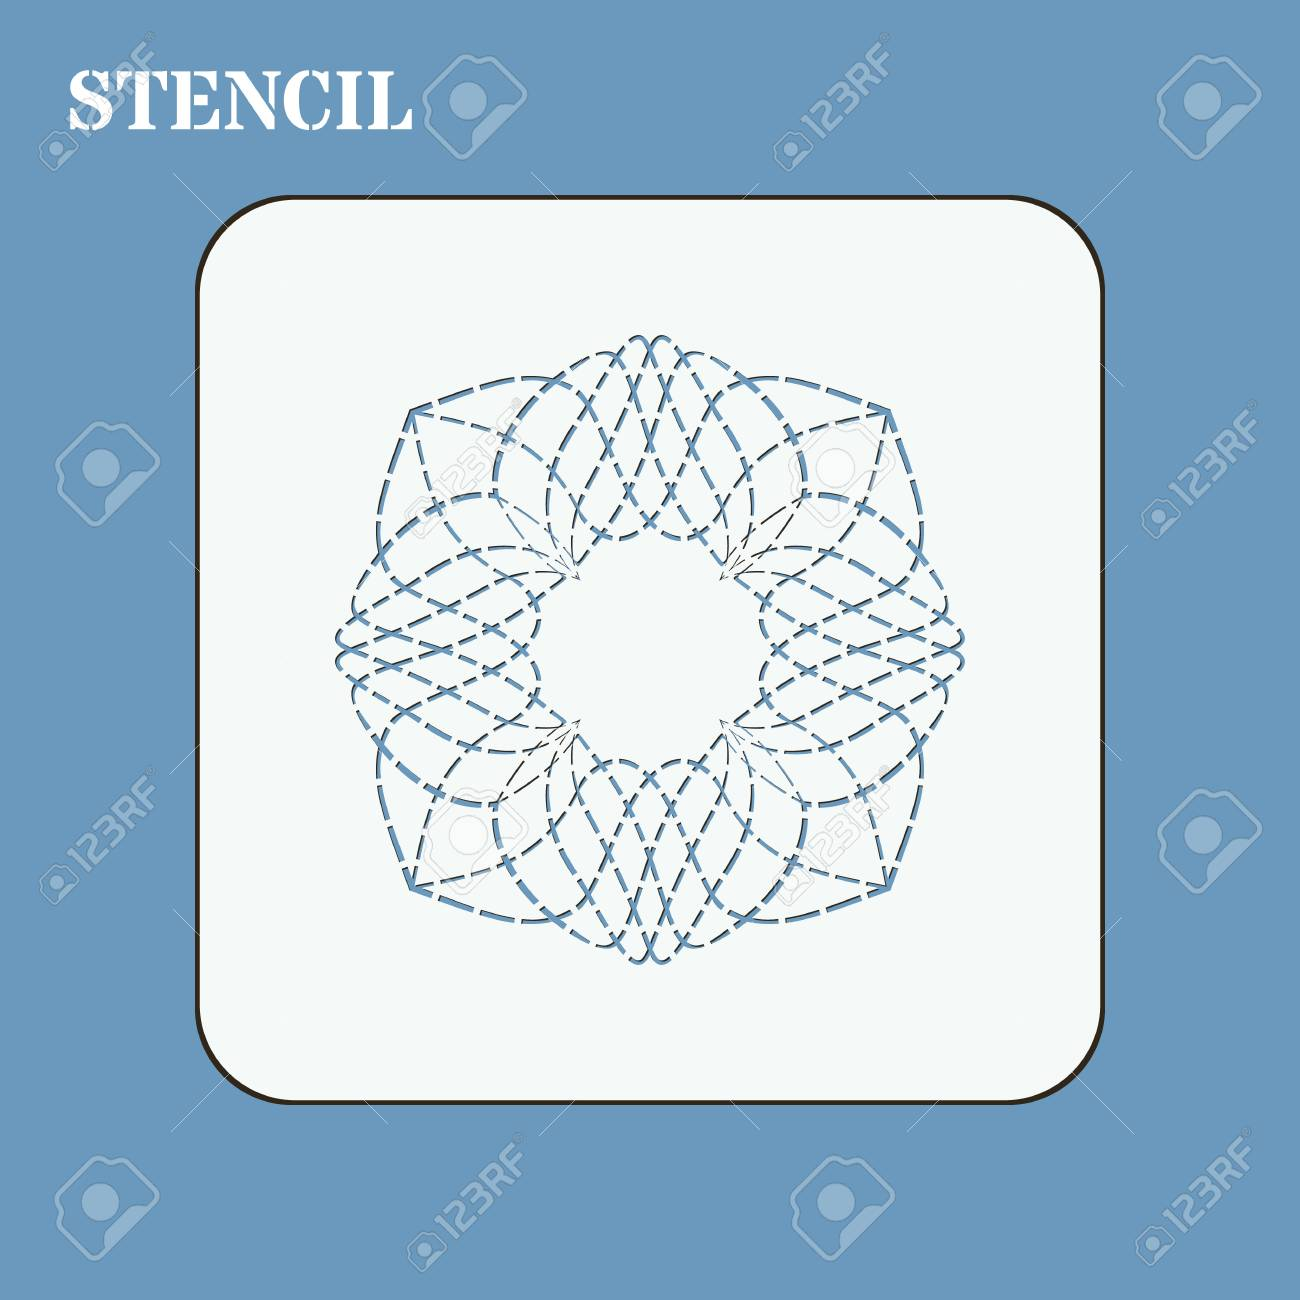 stencil template for quilting it can be used for laser cutting or punching stencil